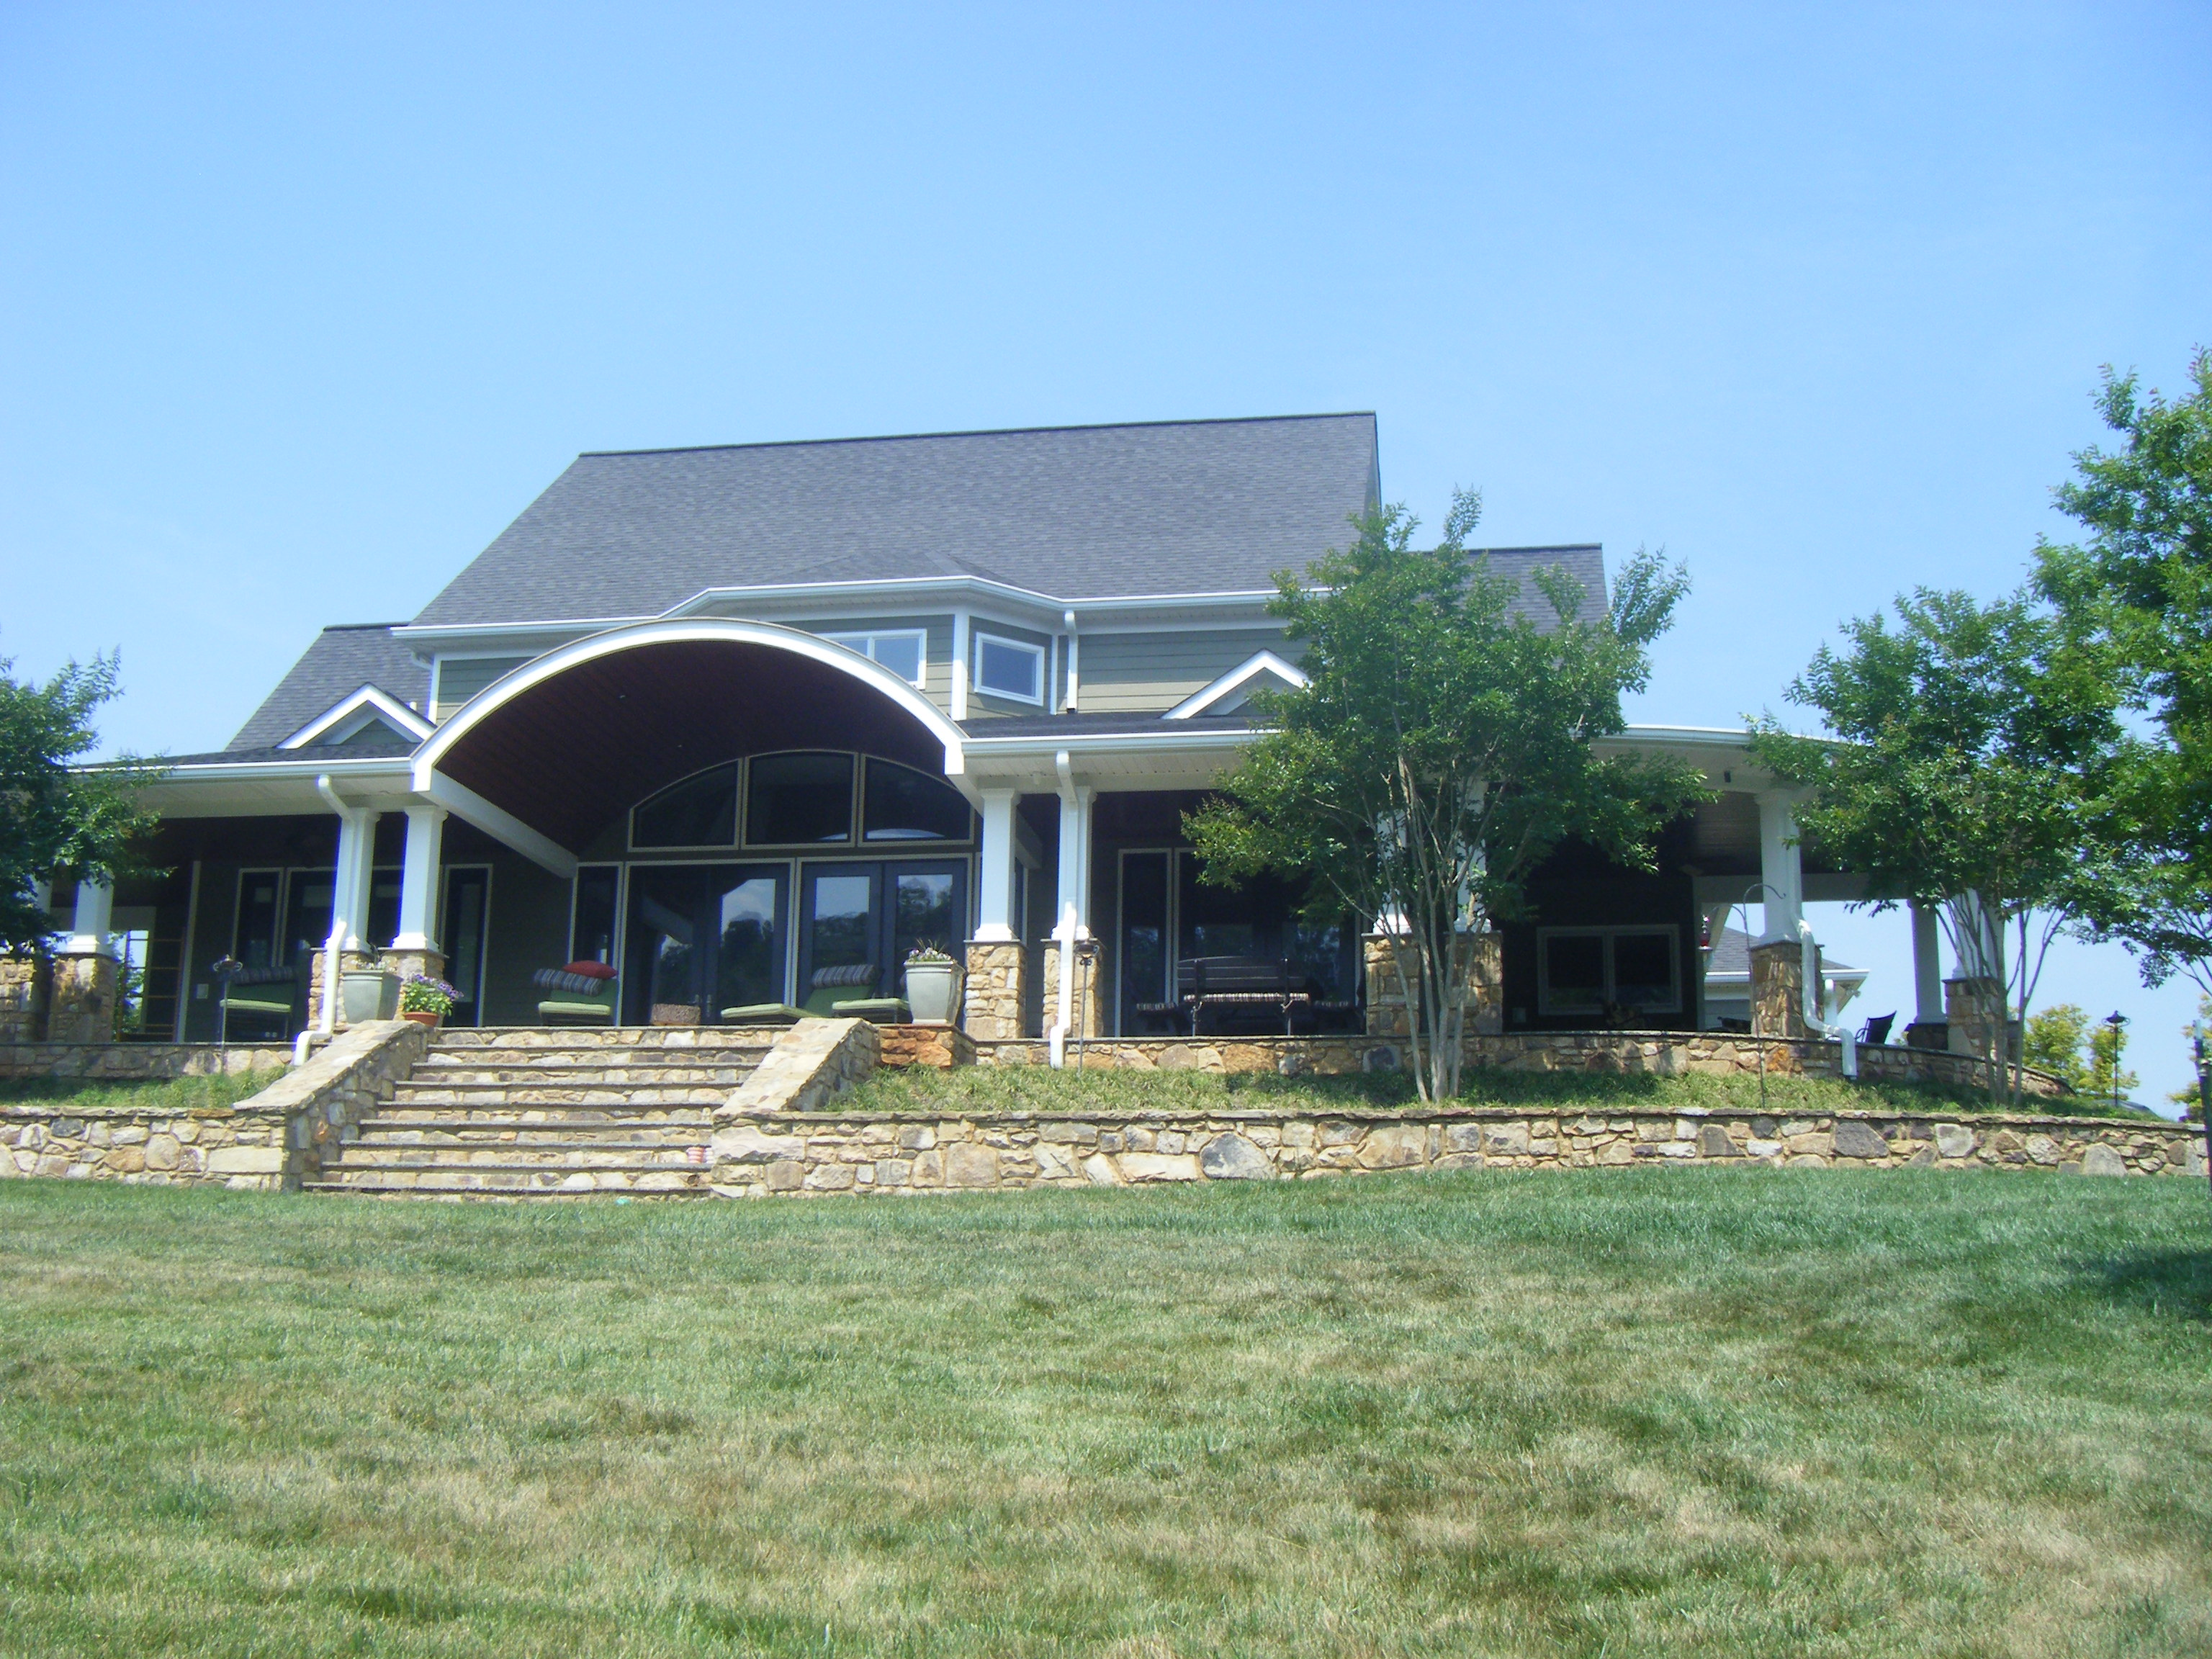 Finished a nice house!-other-010.jpg